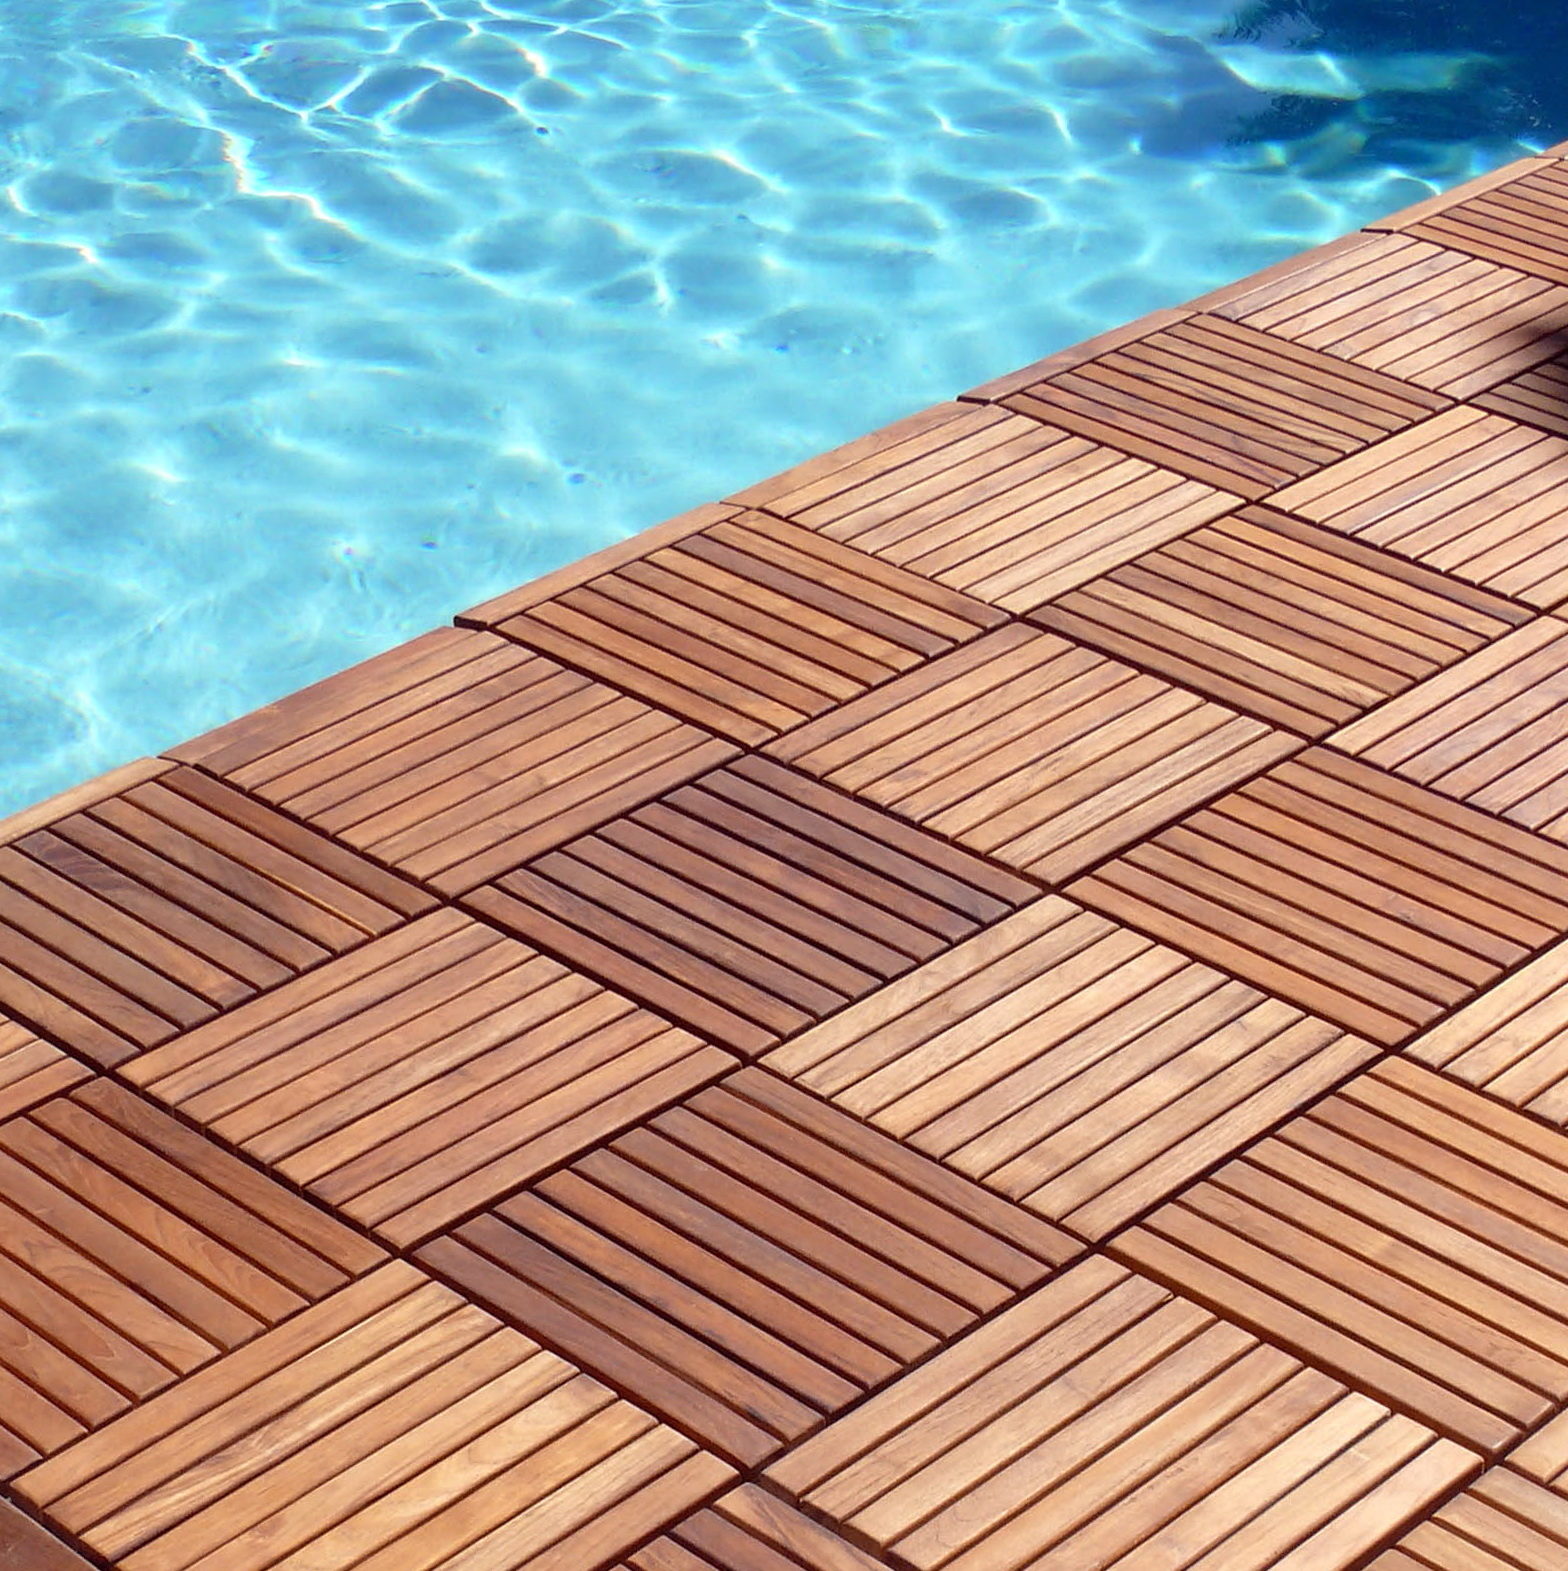 Outdoor wooden deck tiles home design ideas outdoor wooden deck tiles dailygadgetfo Images